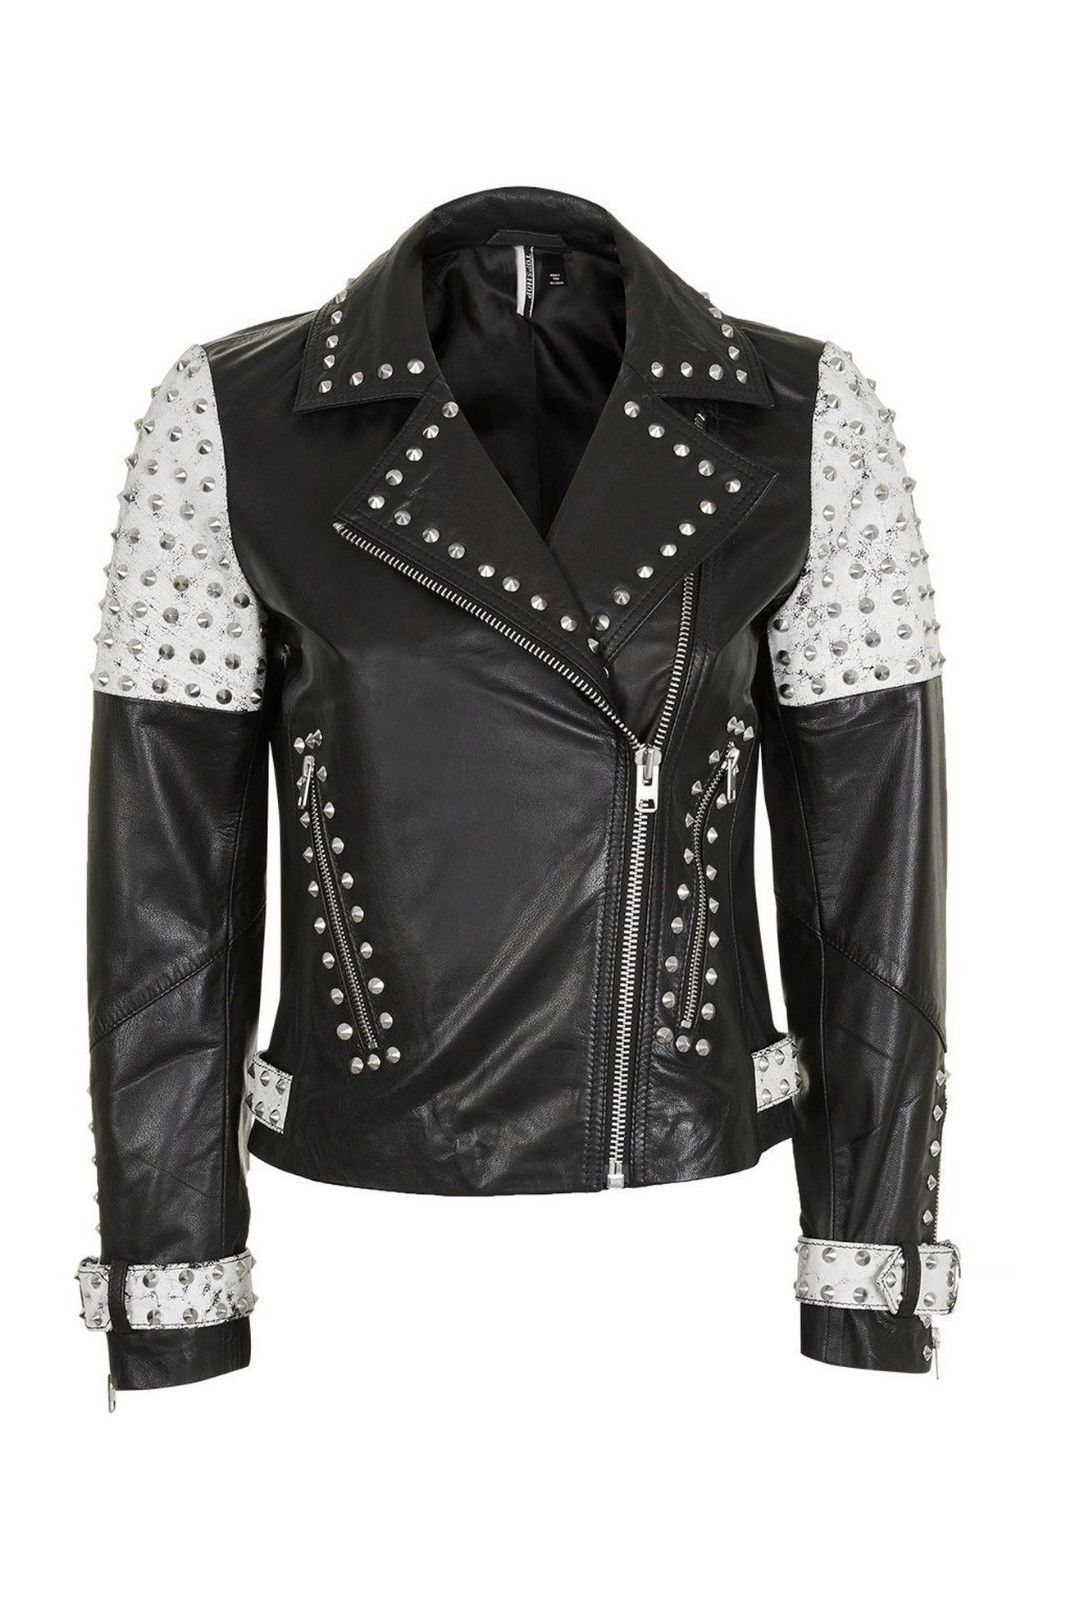 Pin By Manuel Pinho On Http Www Bonanza Com Booths Leather Jacket Jackets Real Leather Jacket [ 1600 x 1066 Pixel ]